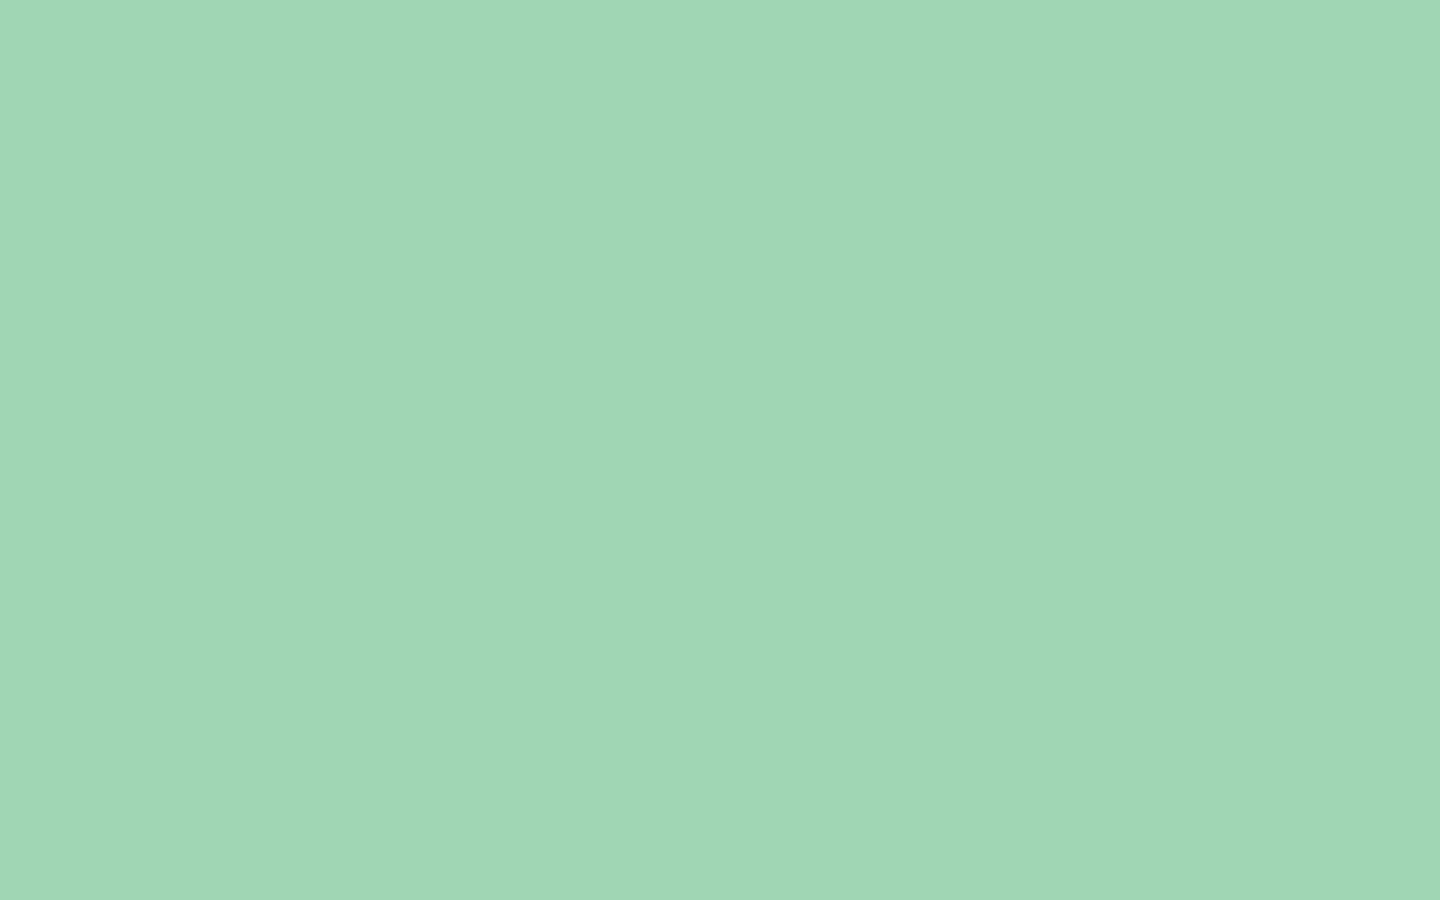 1440x900 Turquoise Green Solid Color Background